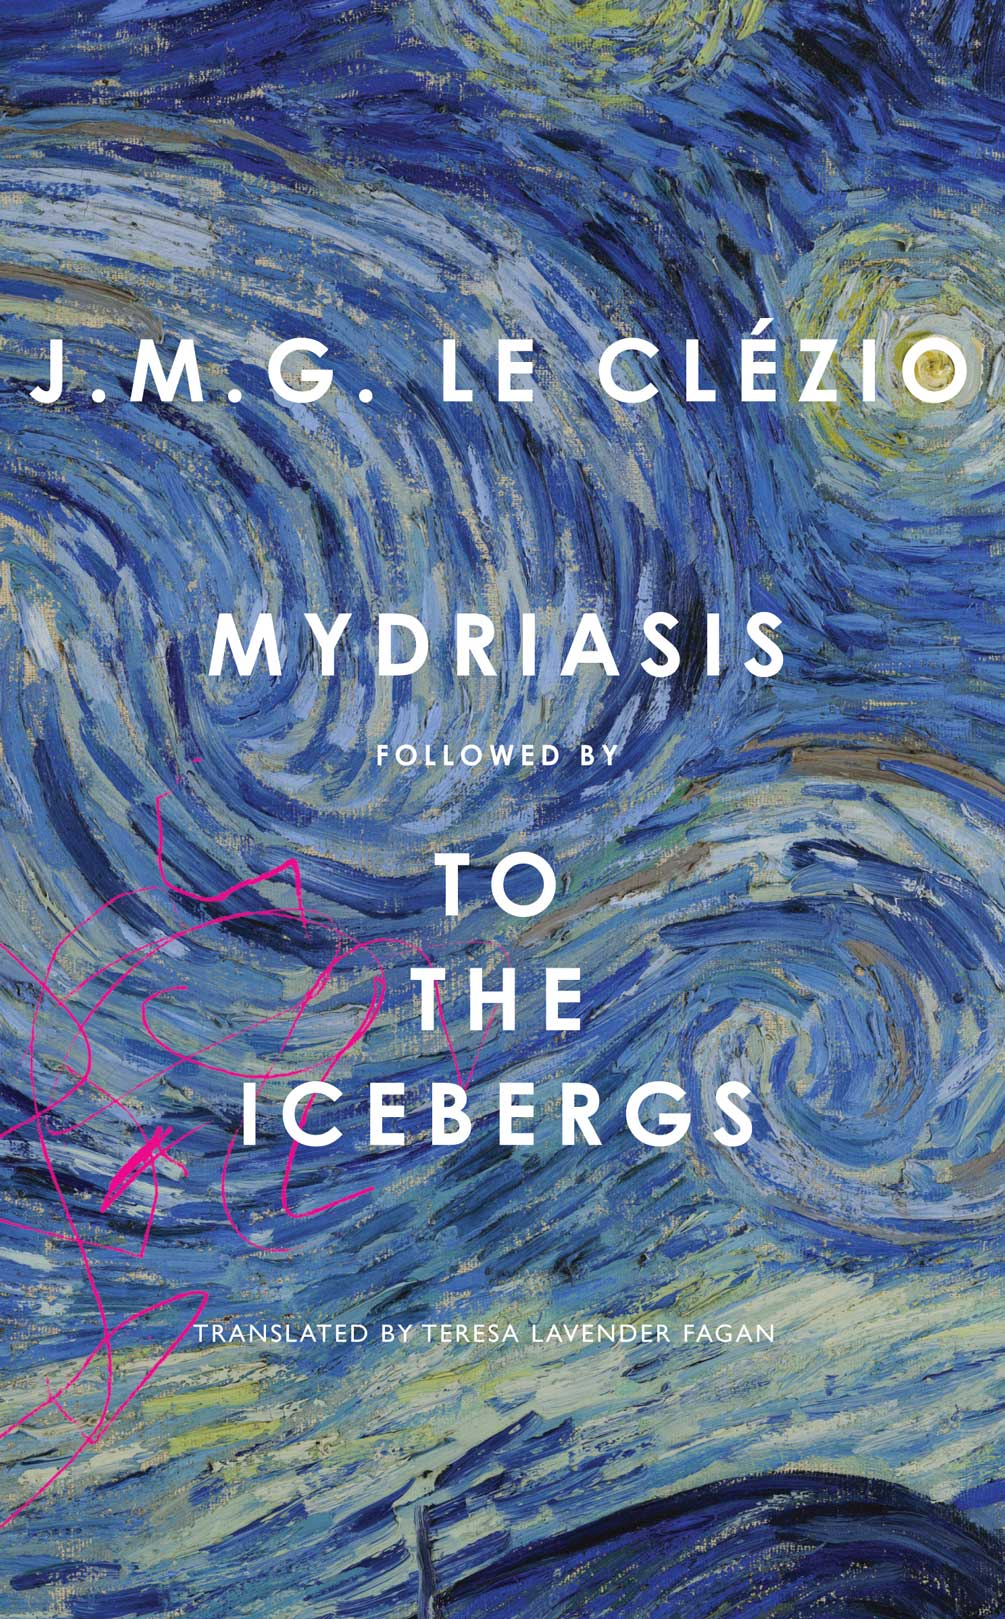 """Mydriasis: followed by """"To the Icebergs"""" by J. M. G. Le Clézio  